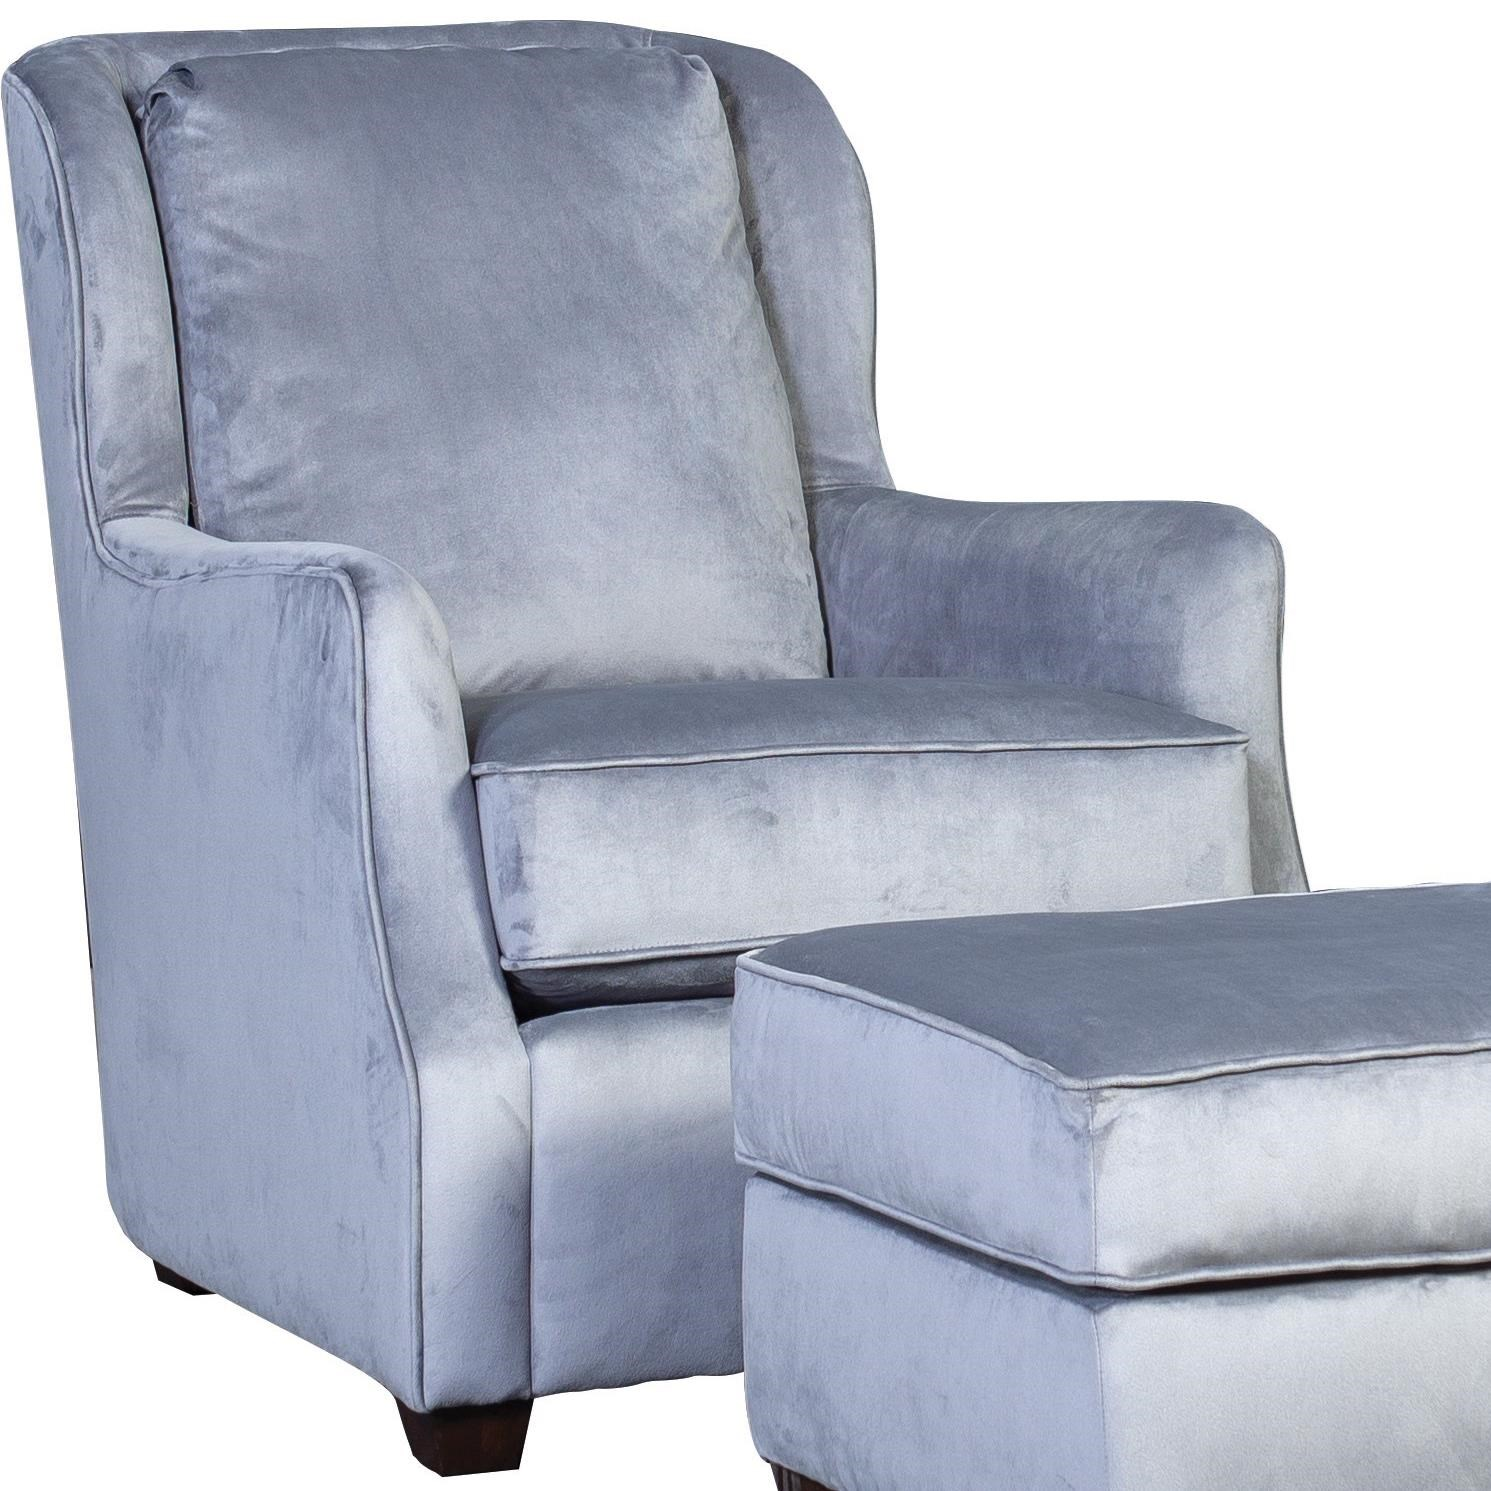 5656 Chair by Mayo at Wilson's Furniture